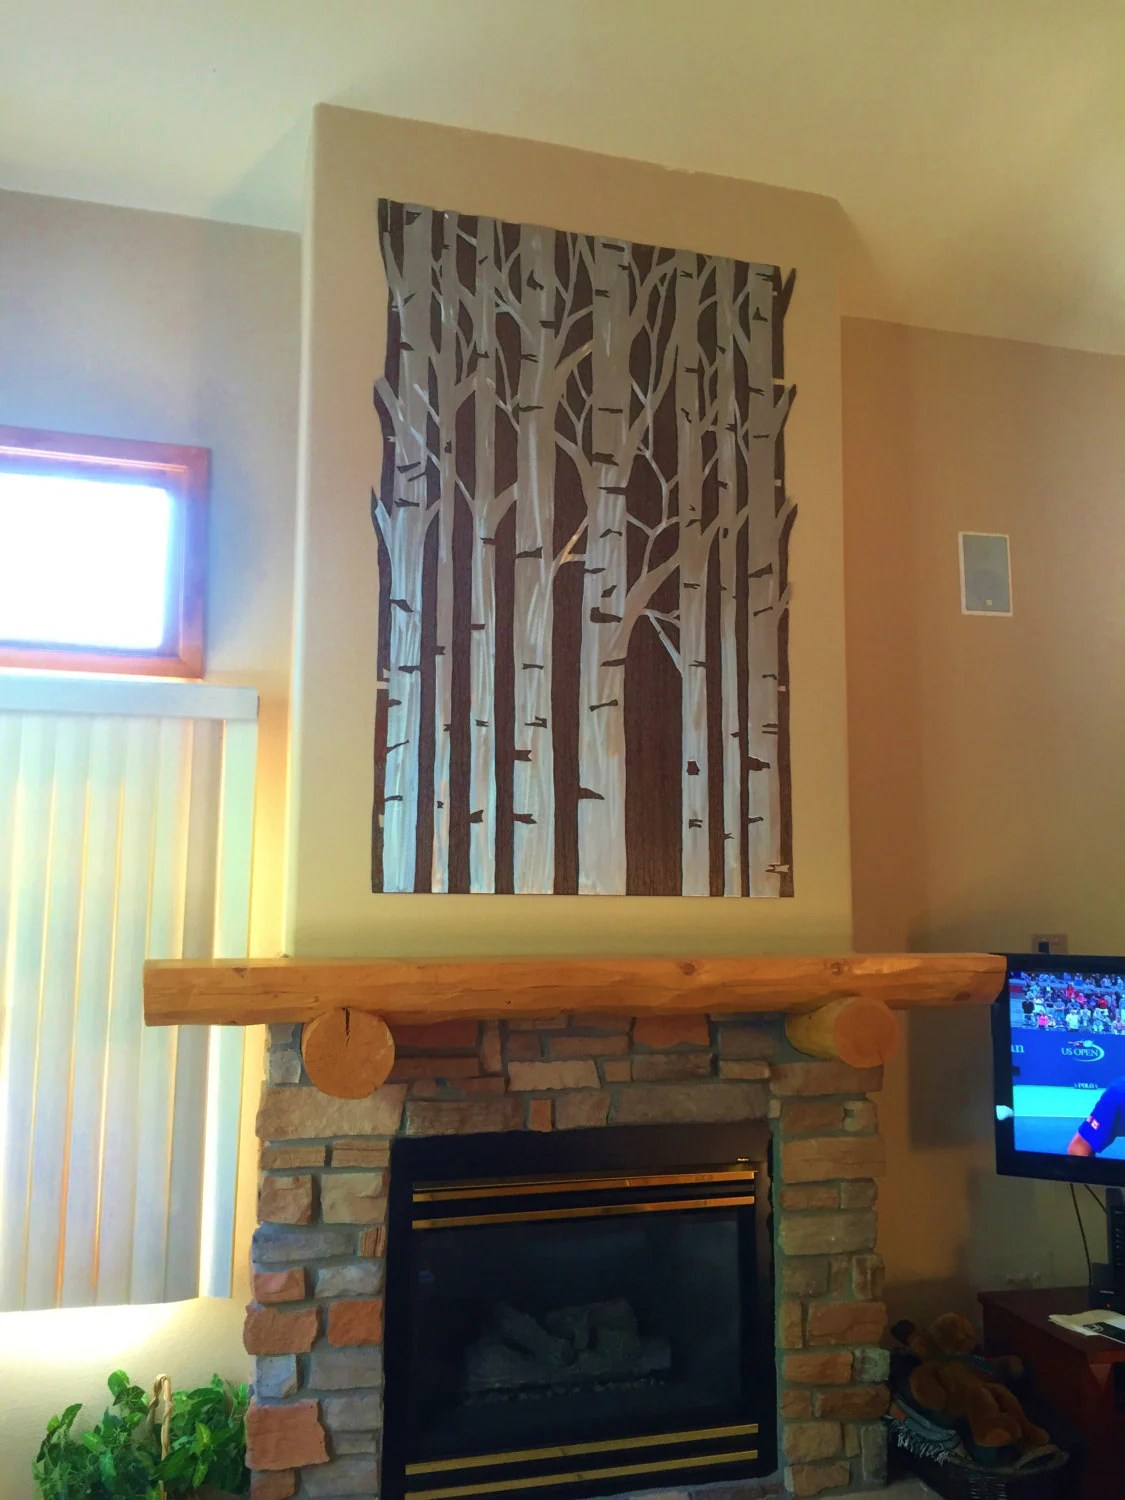 metal wall art decor for living room decorating ideas coffee tables extra large aspen trees above fireplace artwork nature lover gift ski cabin mountain resort